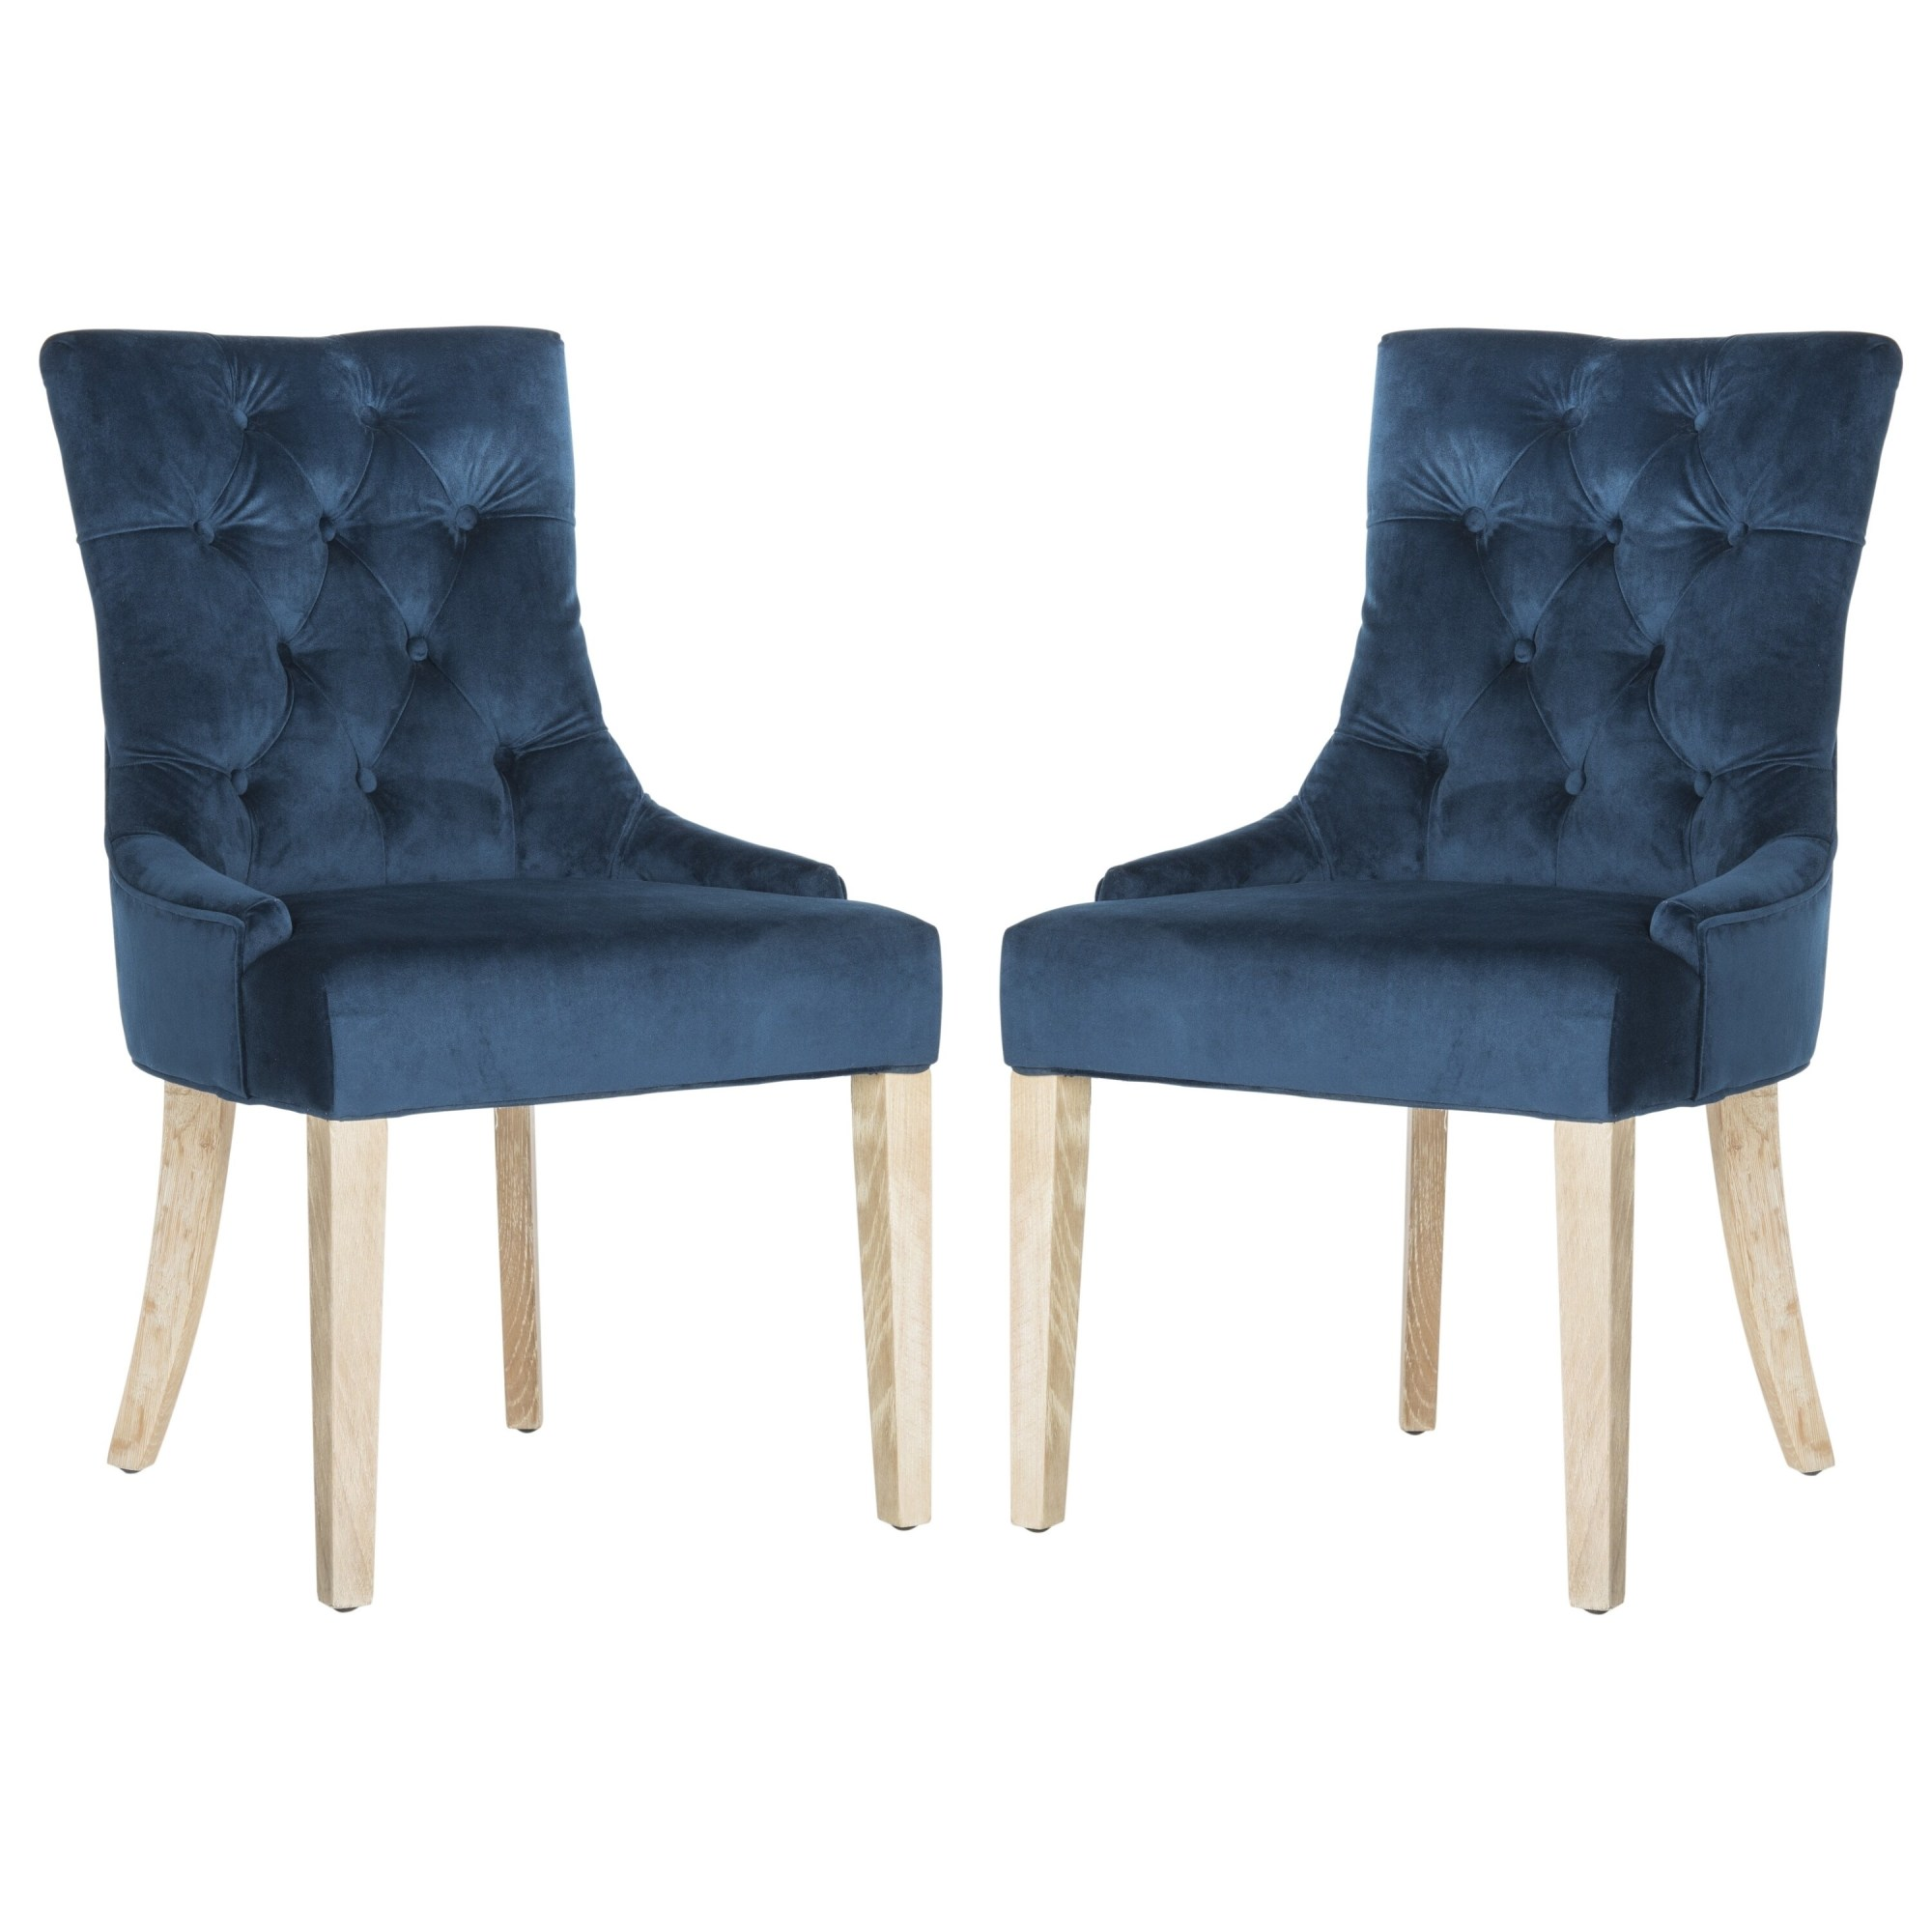 hight resolution of details about safavieh en vogue dining abby navy cotton dining chairs set blue